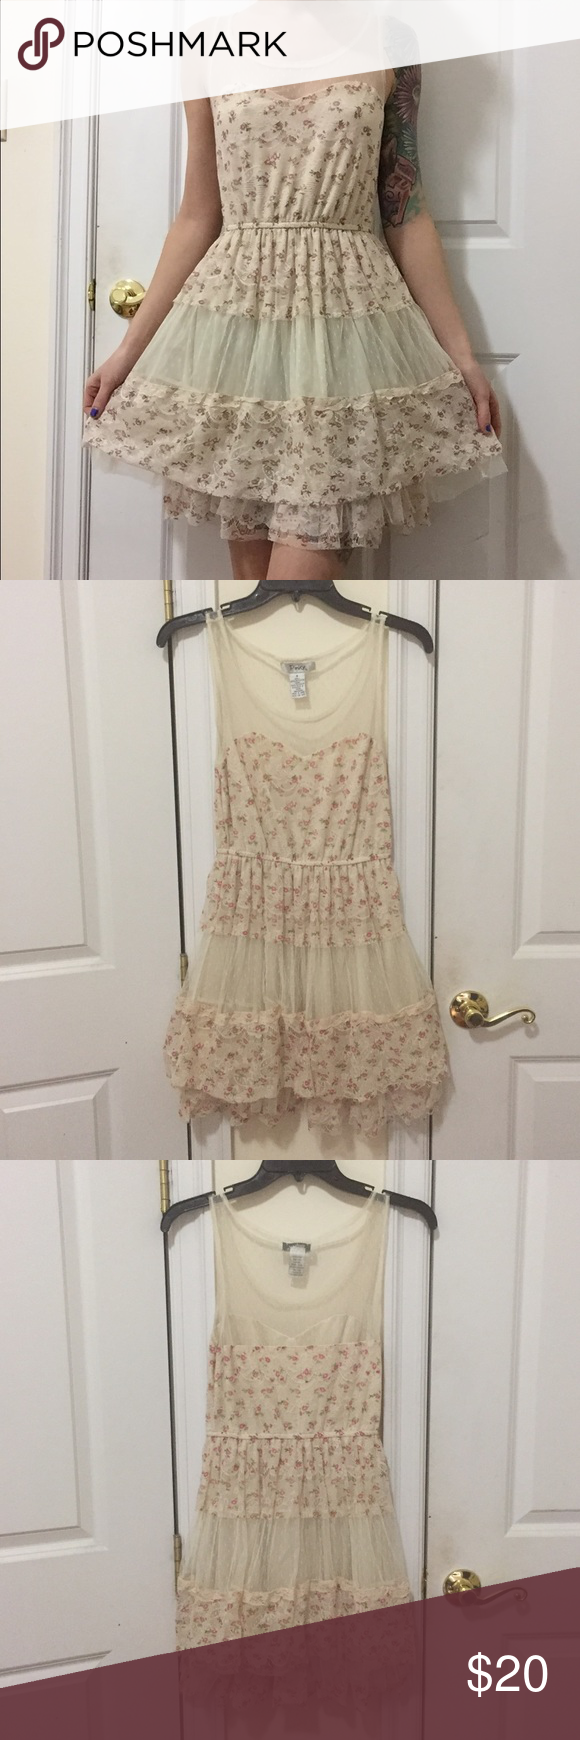 lace summer flower dress adorable dress, perfect condition. Dresses